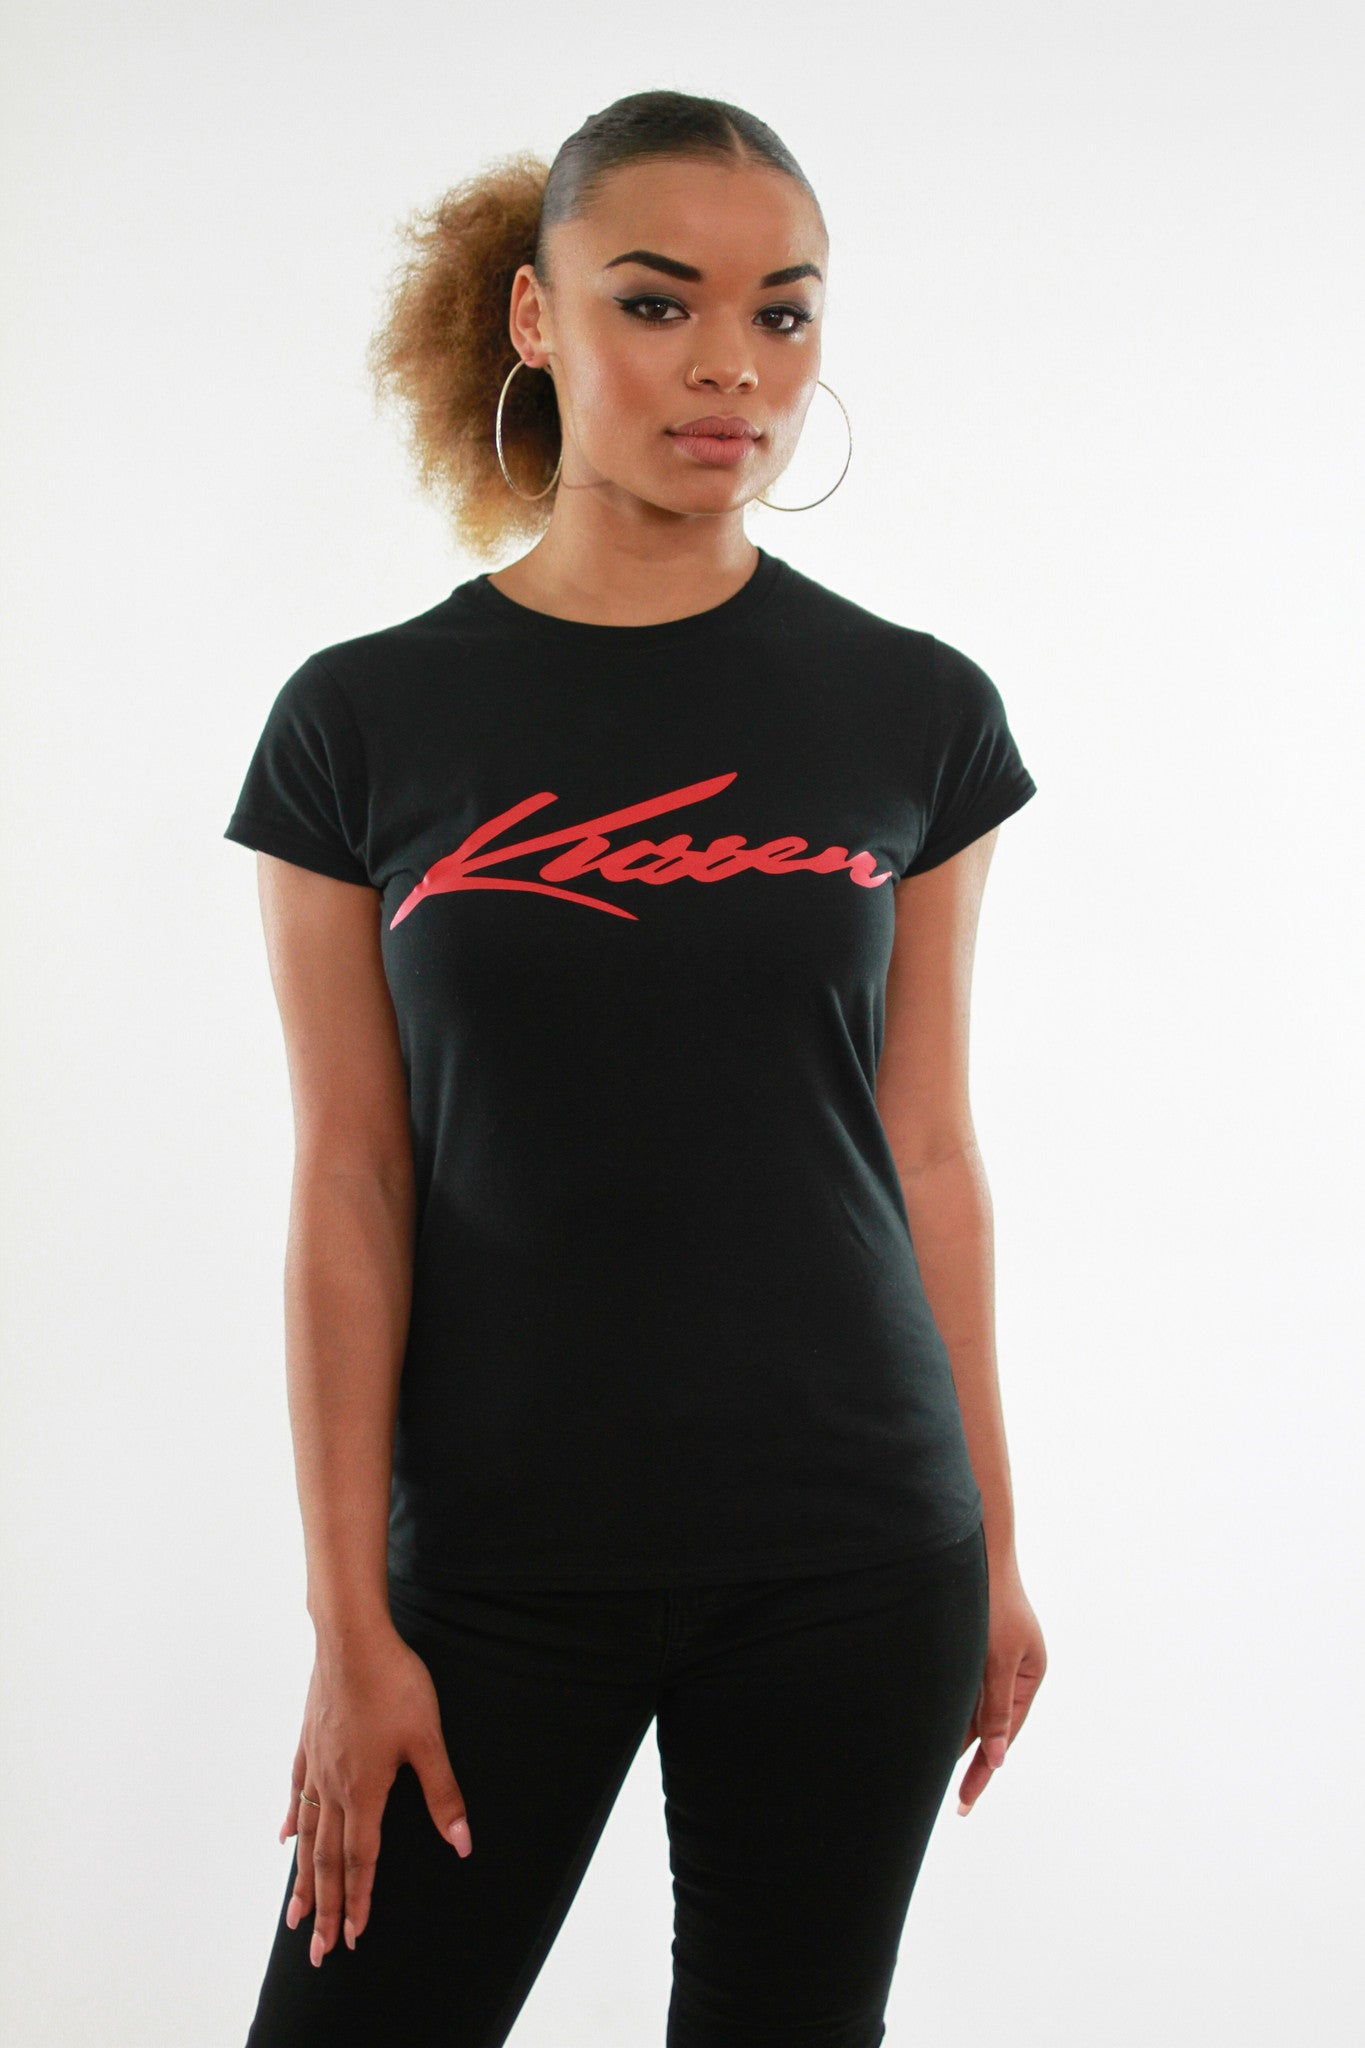 KUSSEN FITTED FEMALE SIGNATURE BLACK/RED T-SHIRT